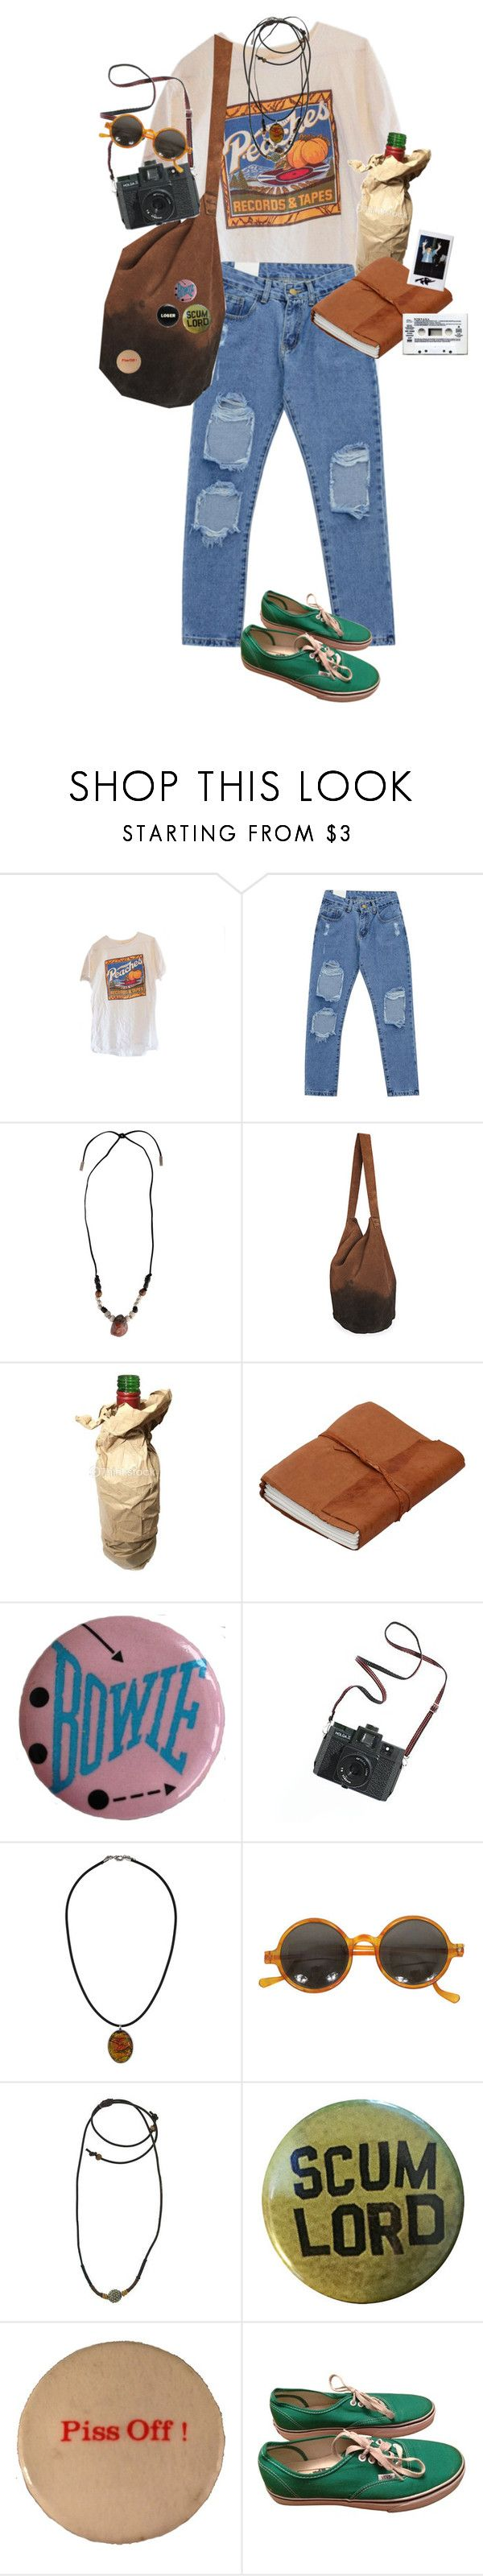 """peaches succ"" by kampow ❤ liked on Polyvore featuring Chicnova Fashion, Yves Saint Laurent, Veras, Madewell, Topshop, 1928, Vans, indie, Punk and grunge"